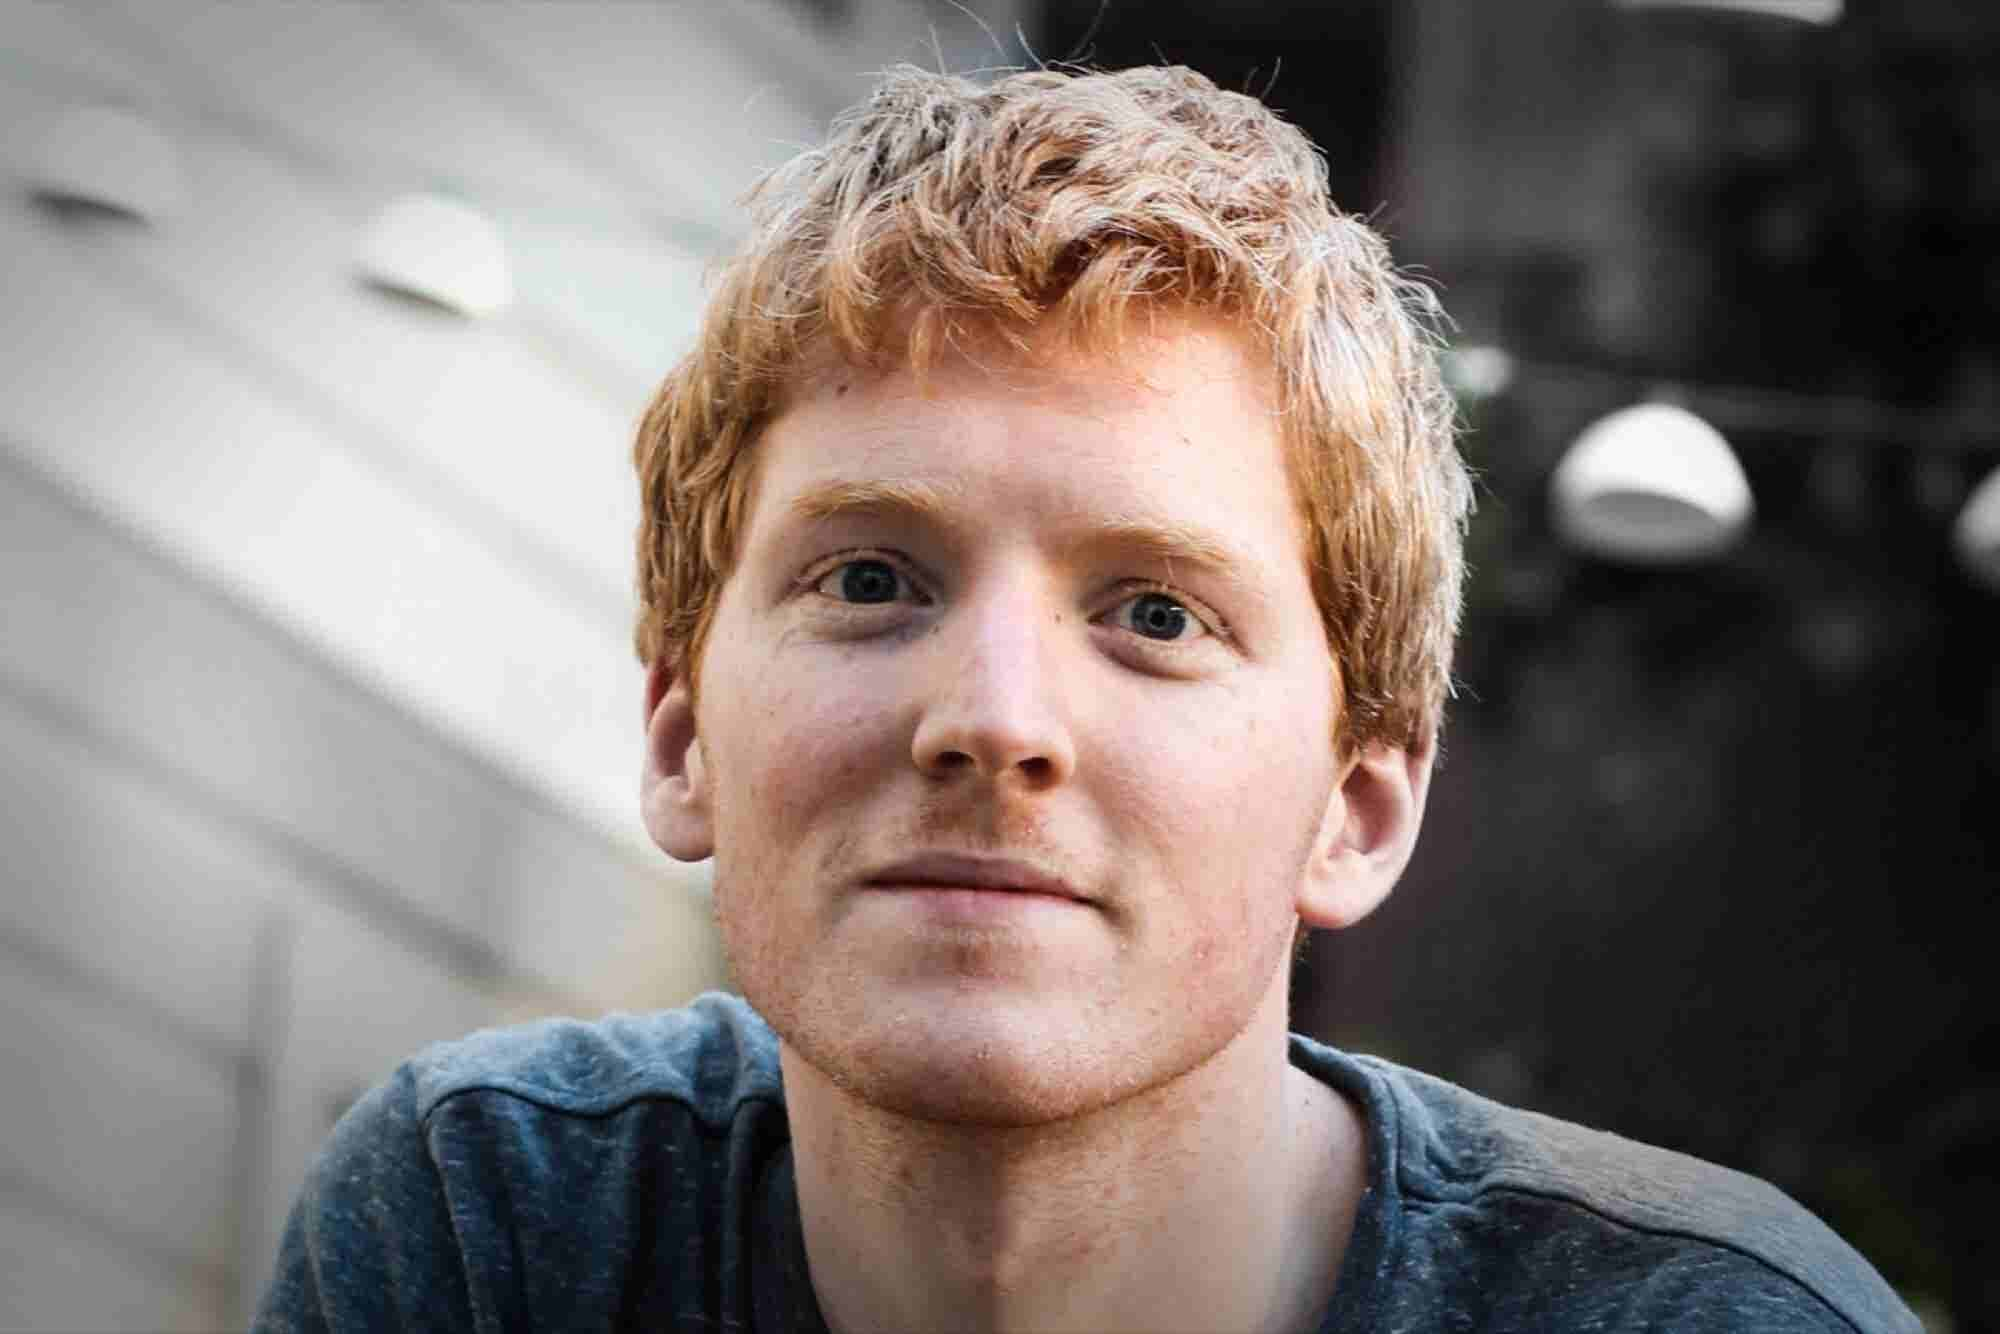 Stripe Co-Founder on How He Could Have Scaled Faster